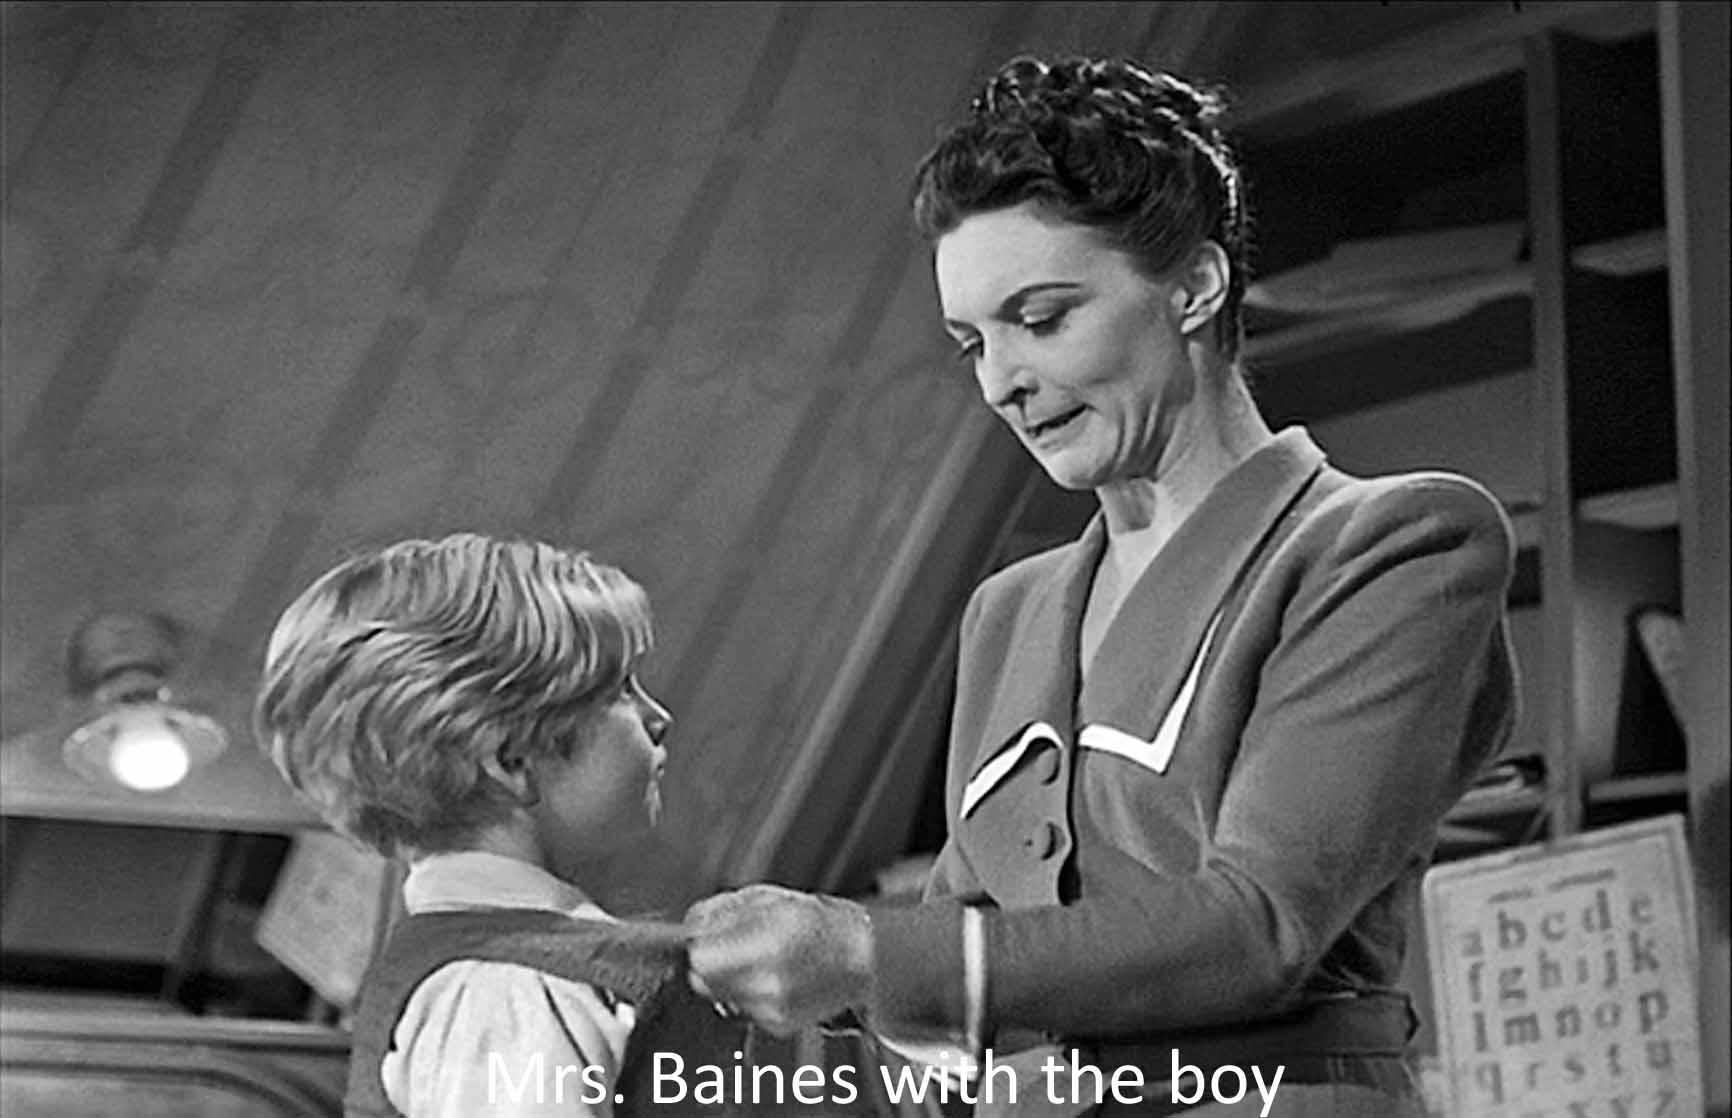 Mrs. Baines with the boy